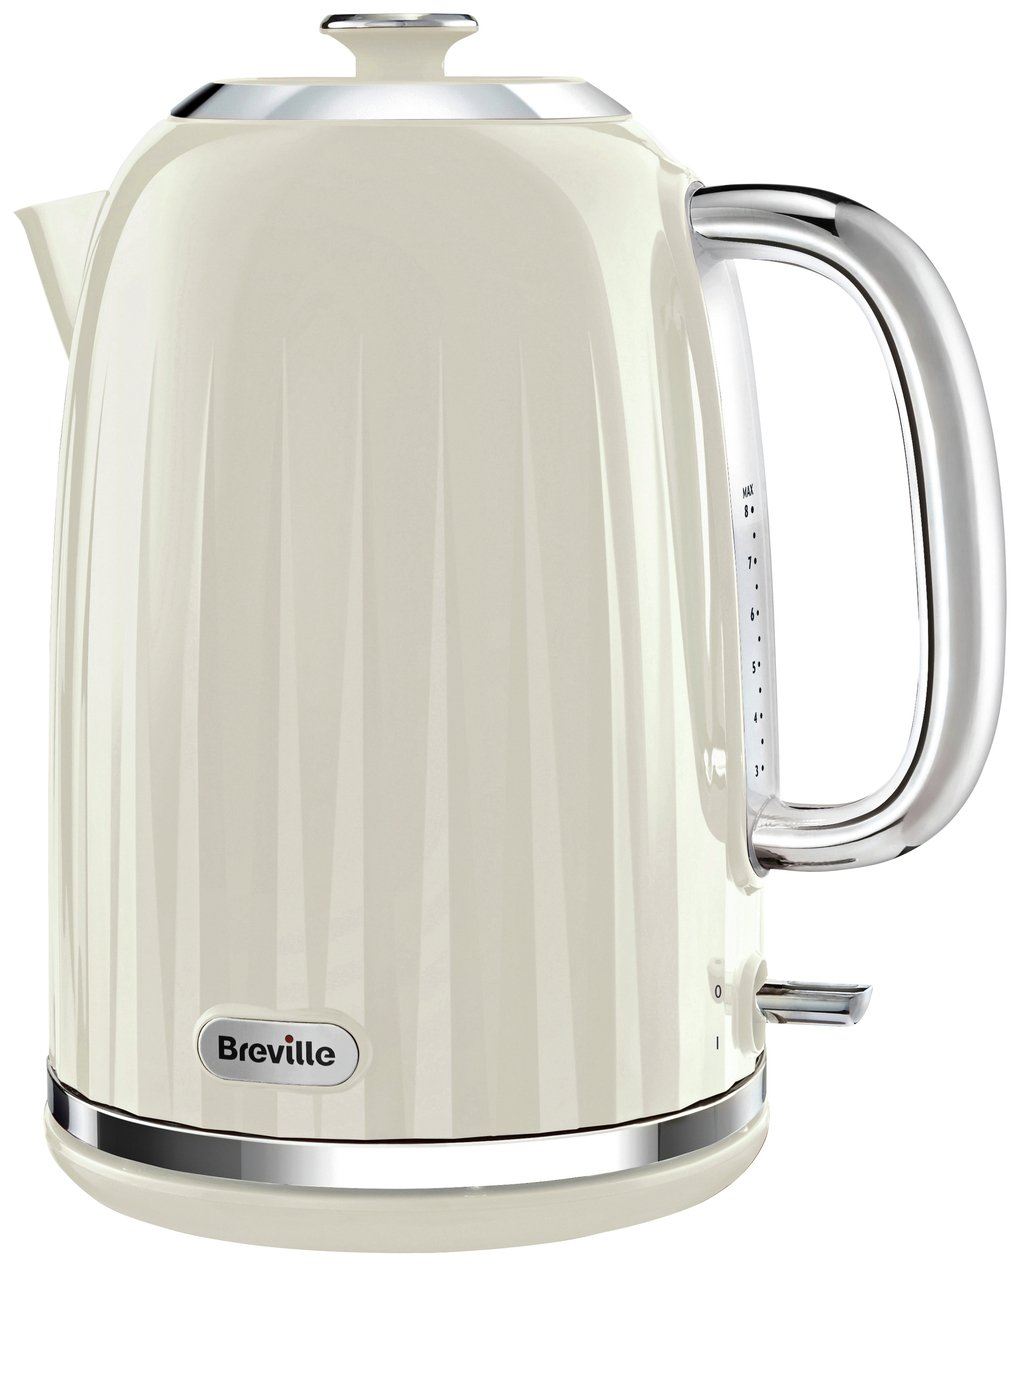 Image of Breville - Kettle - Impressions Cream.